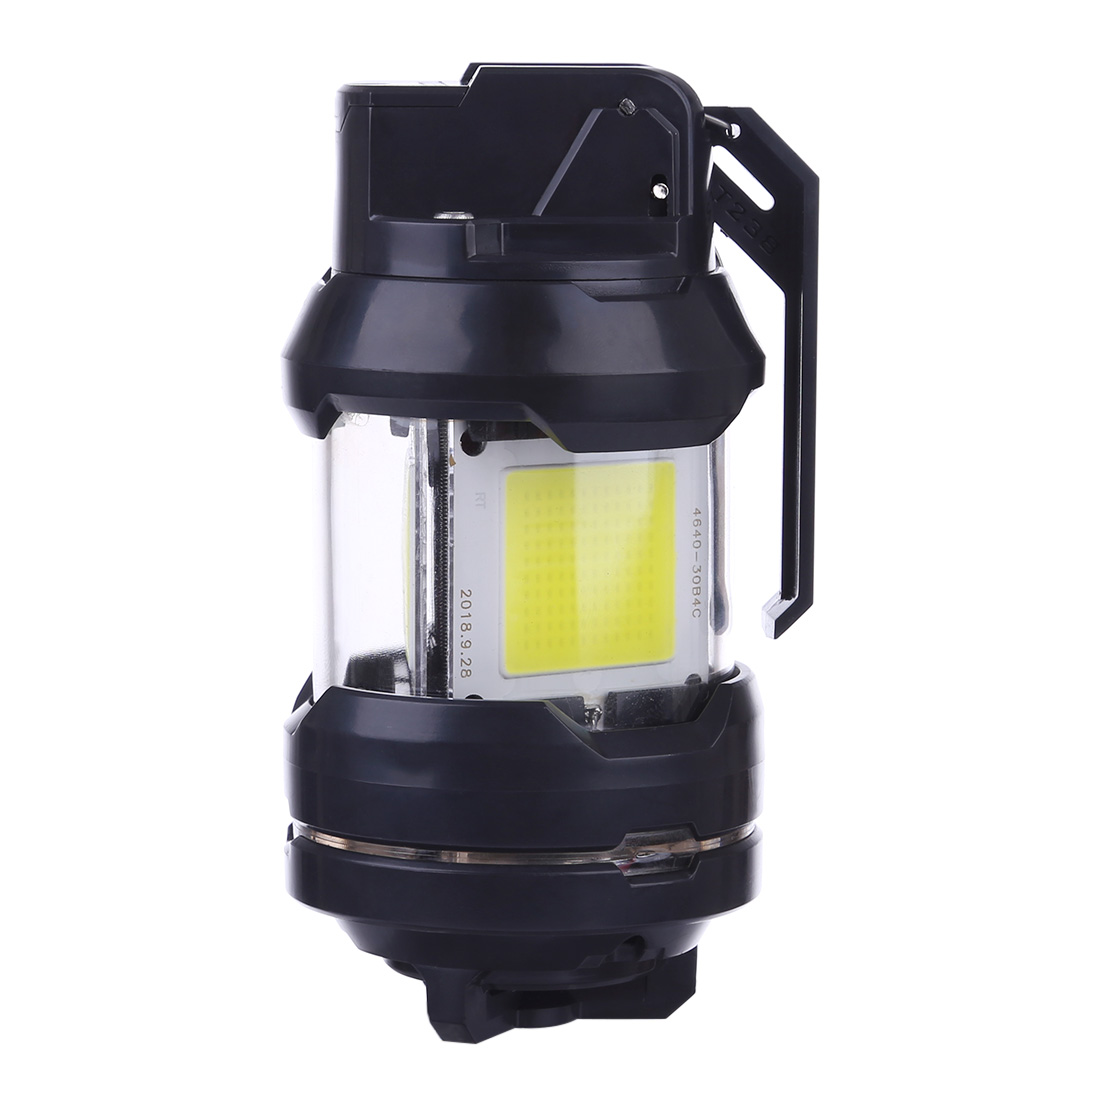 New T238 LED Frequency Bright Cool Stun Grenade For 11.1v Battery For Water Beads Blaster Night Fight- Black